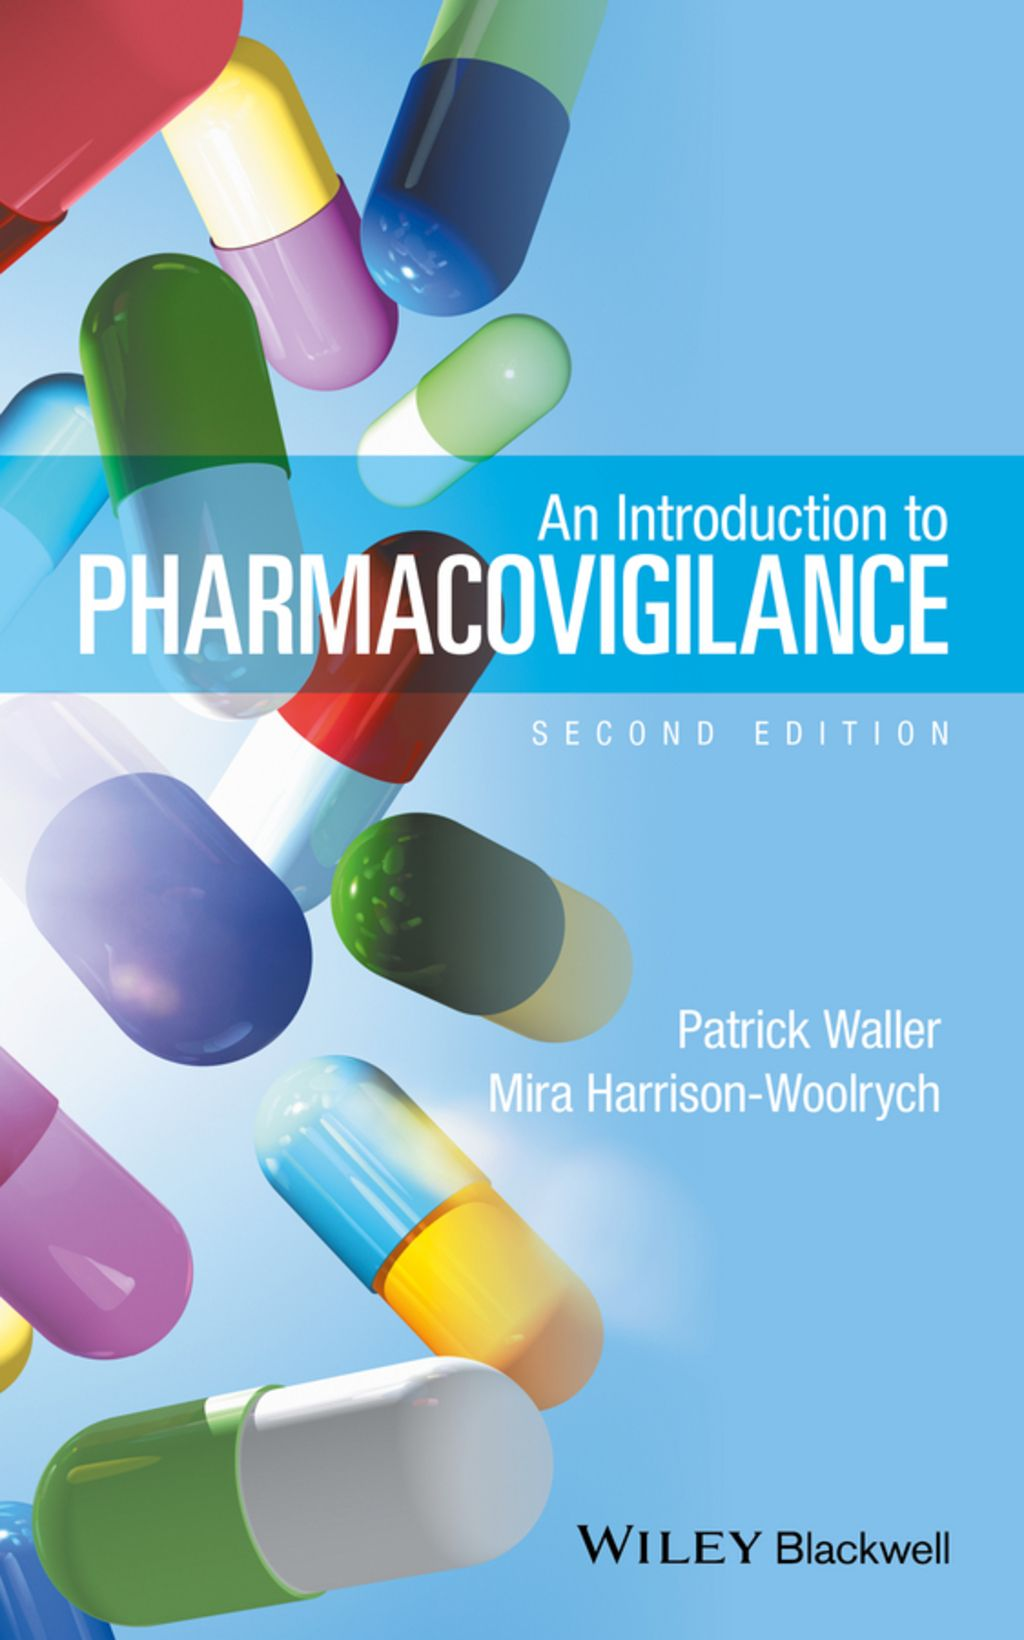 An Introduction To Pharmacovigilance Ebook Science Quotes Ebook Introduction